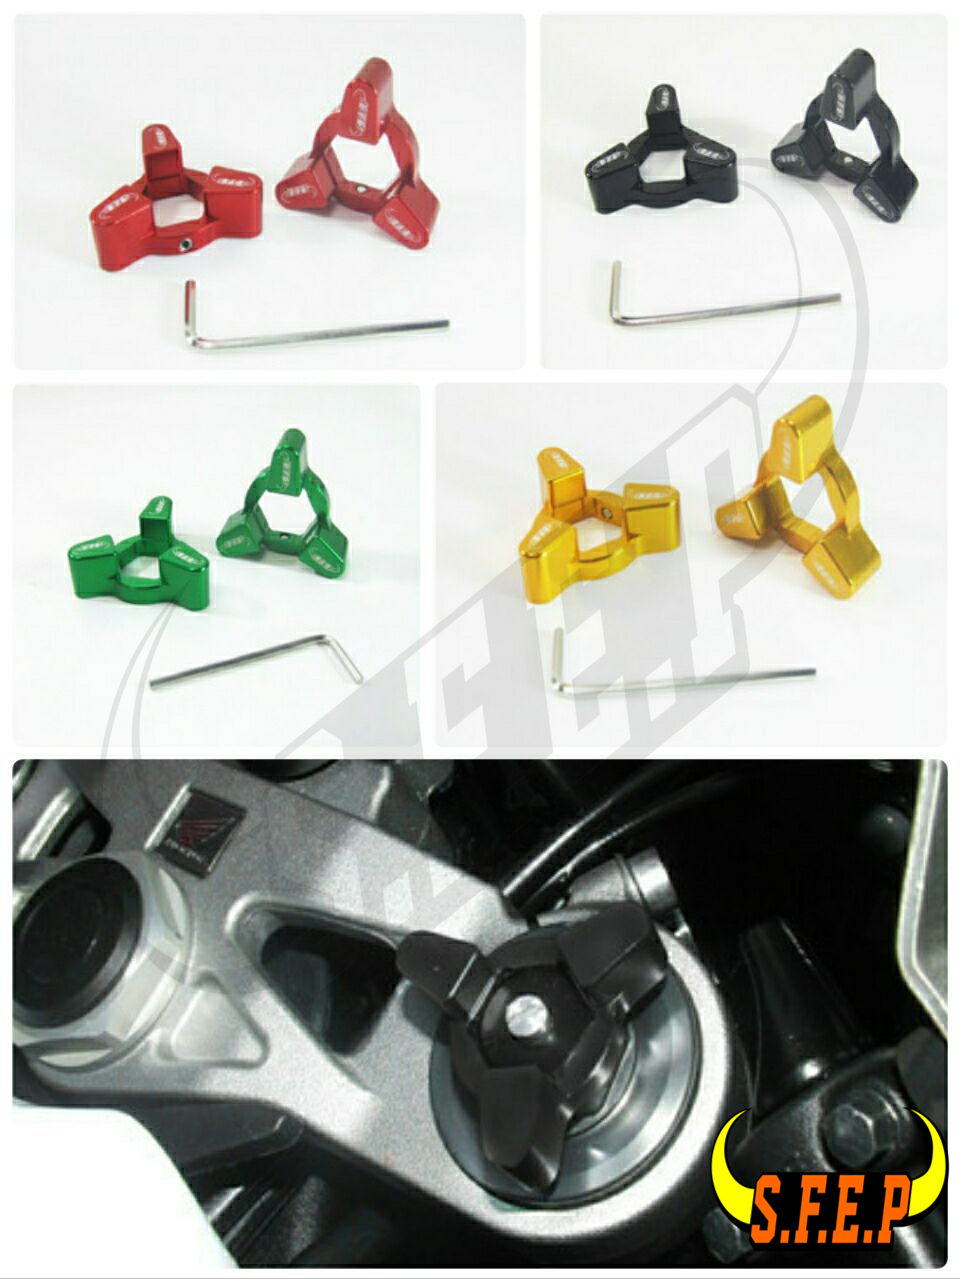 Motorcycle CNC Fork Preload Adjusters For Honda CBR 929RR 00-01/ CBR 600RR 05-06/ CBR 954RR 02-03/ RC 51 00-06/ CBR1000RR 04-07